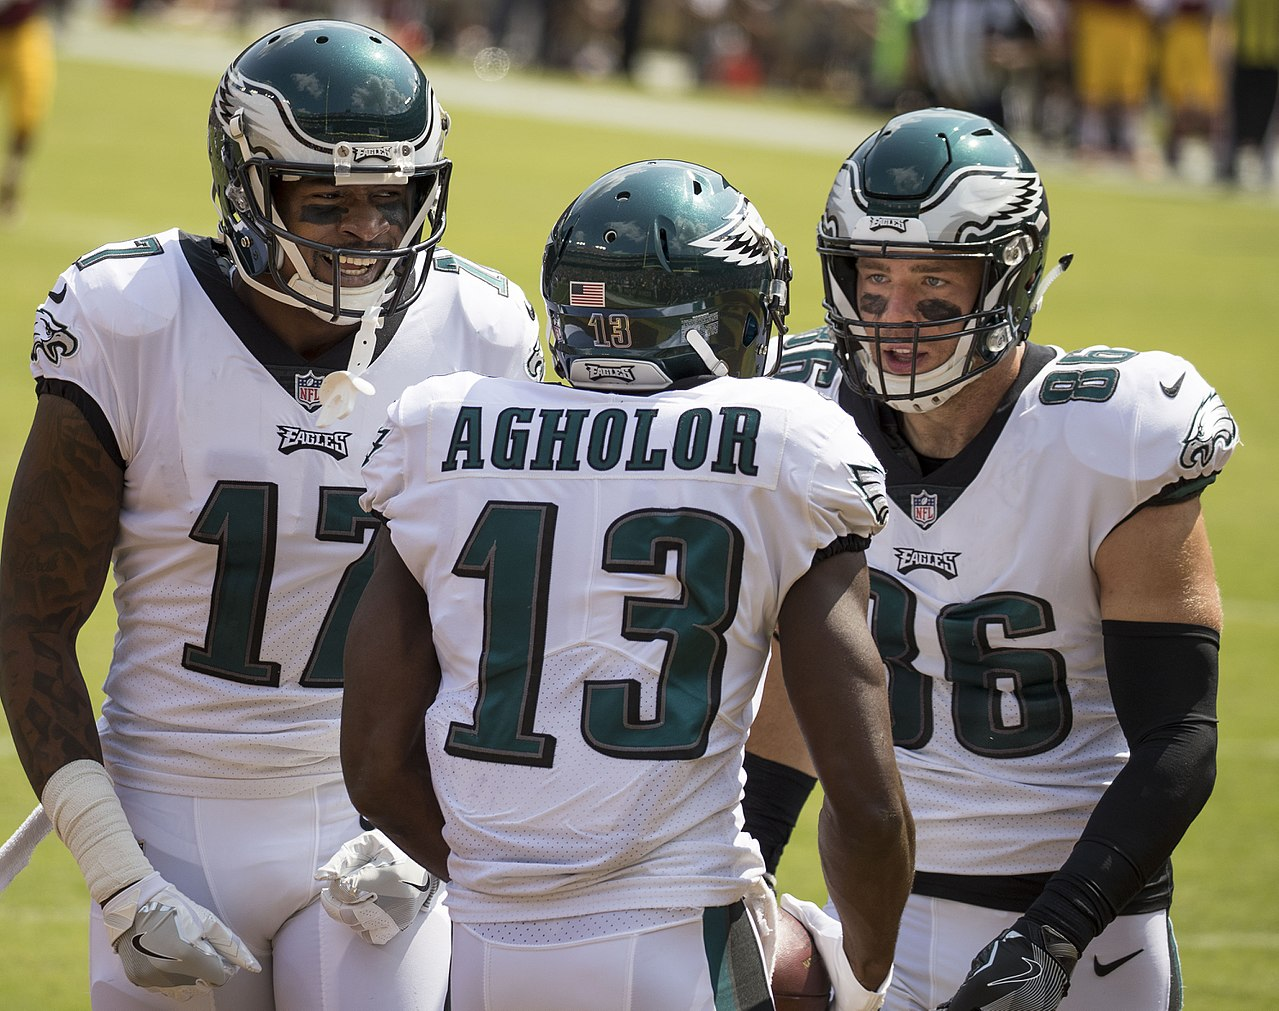 Eagles Agholor